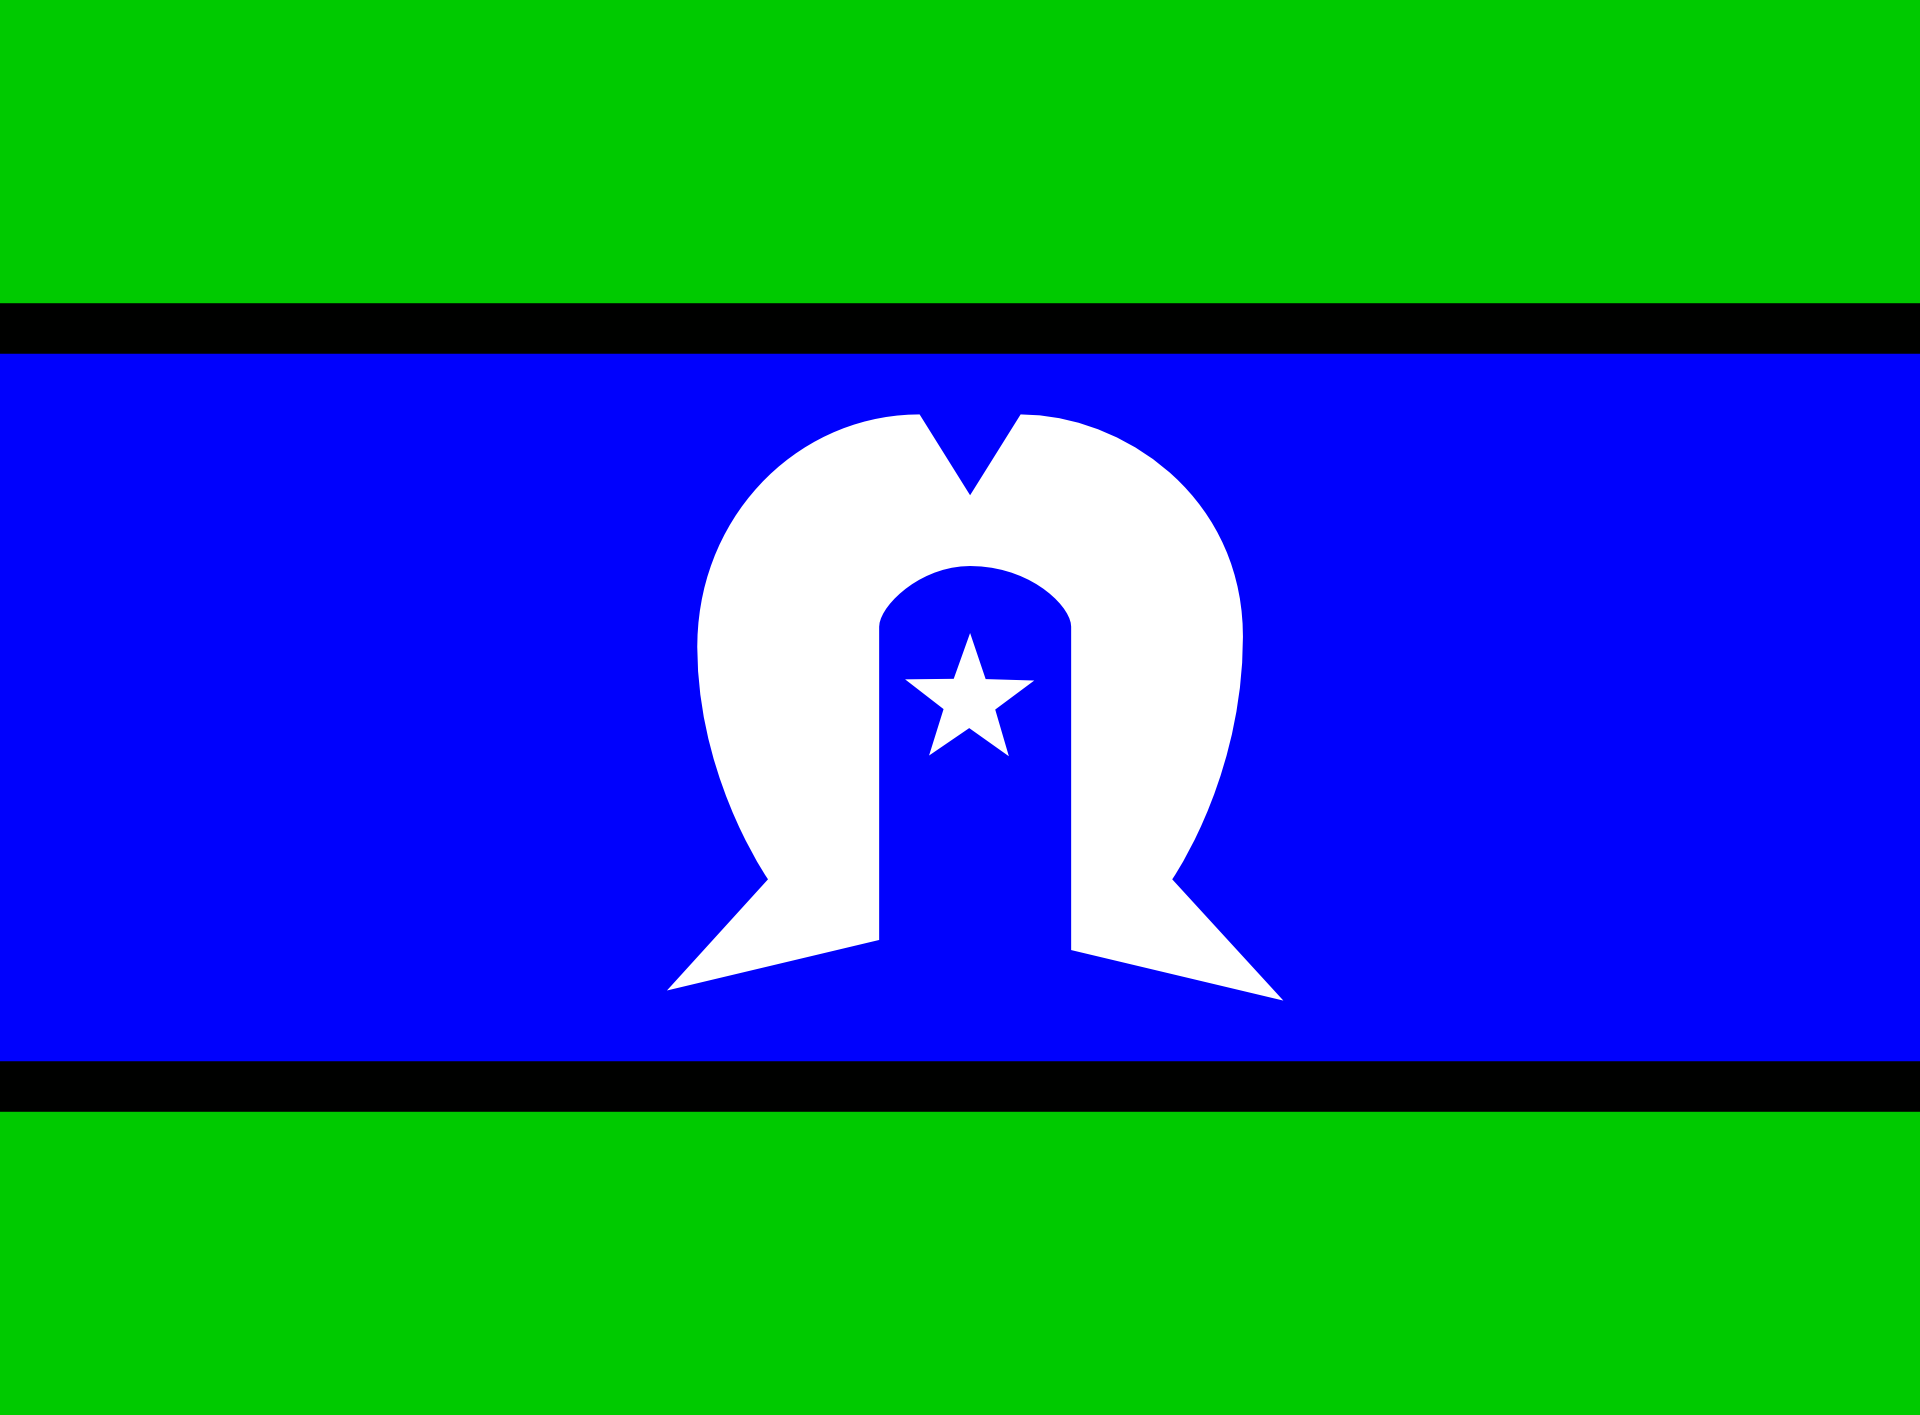 The flag of the Torres Strait Islands